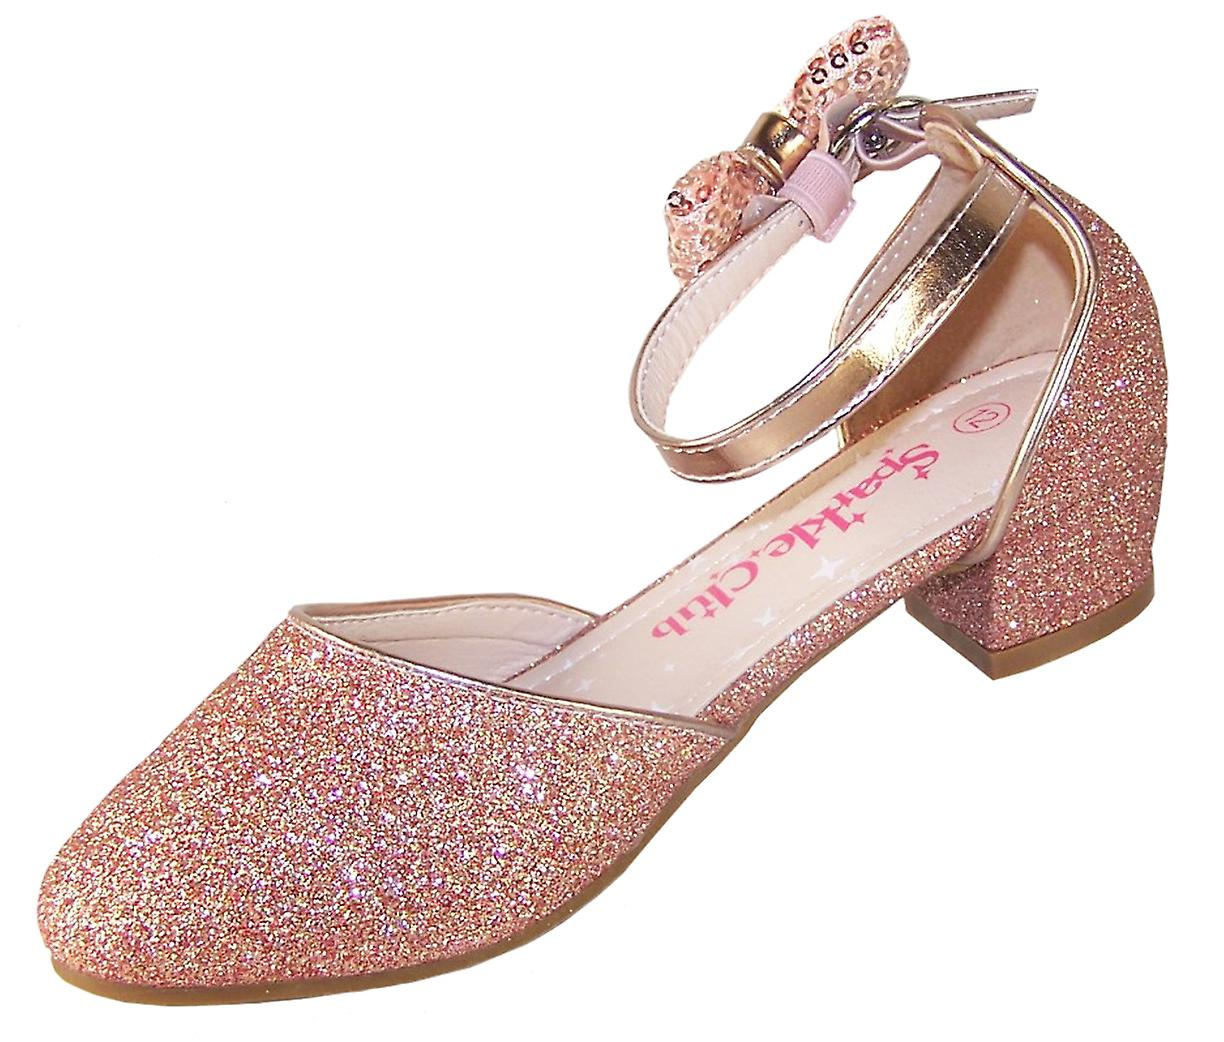 Girls rose gold sparkly heeled party shoes